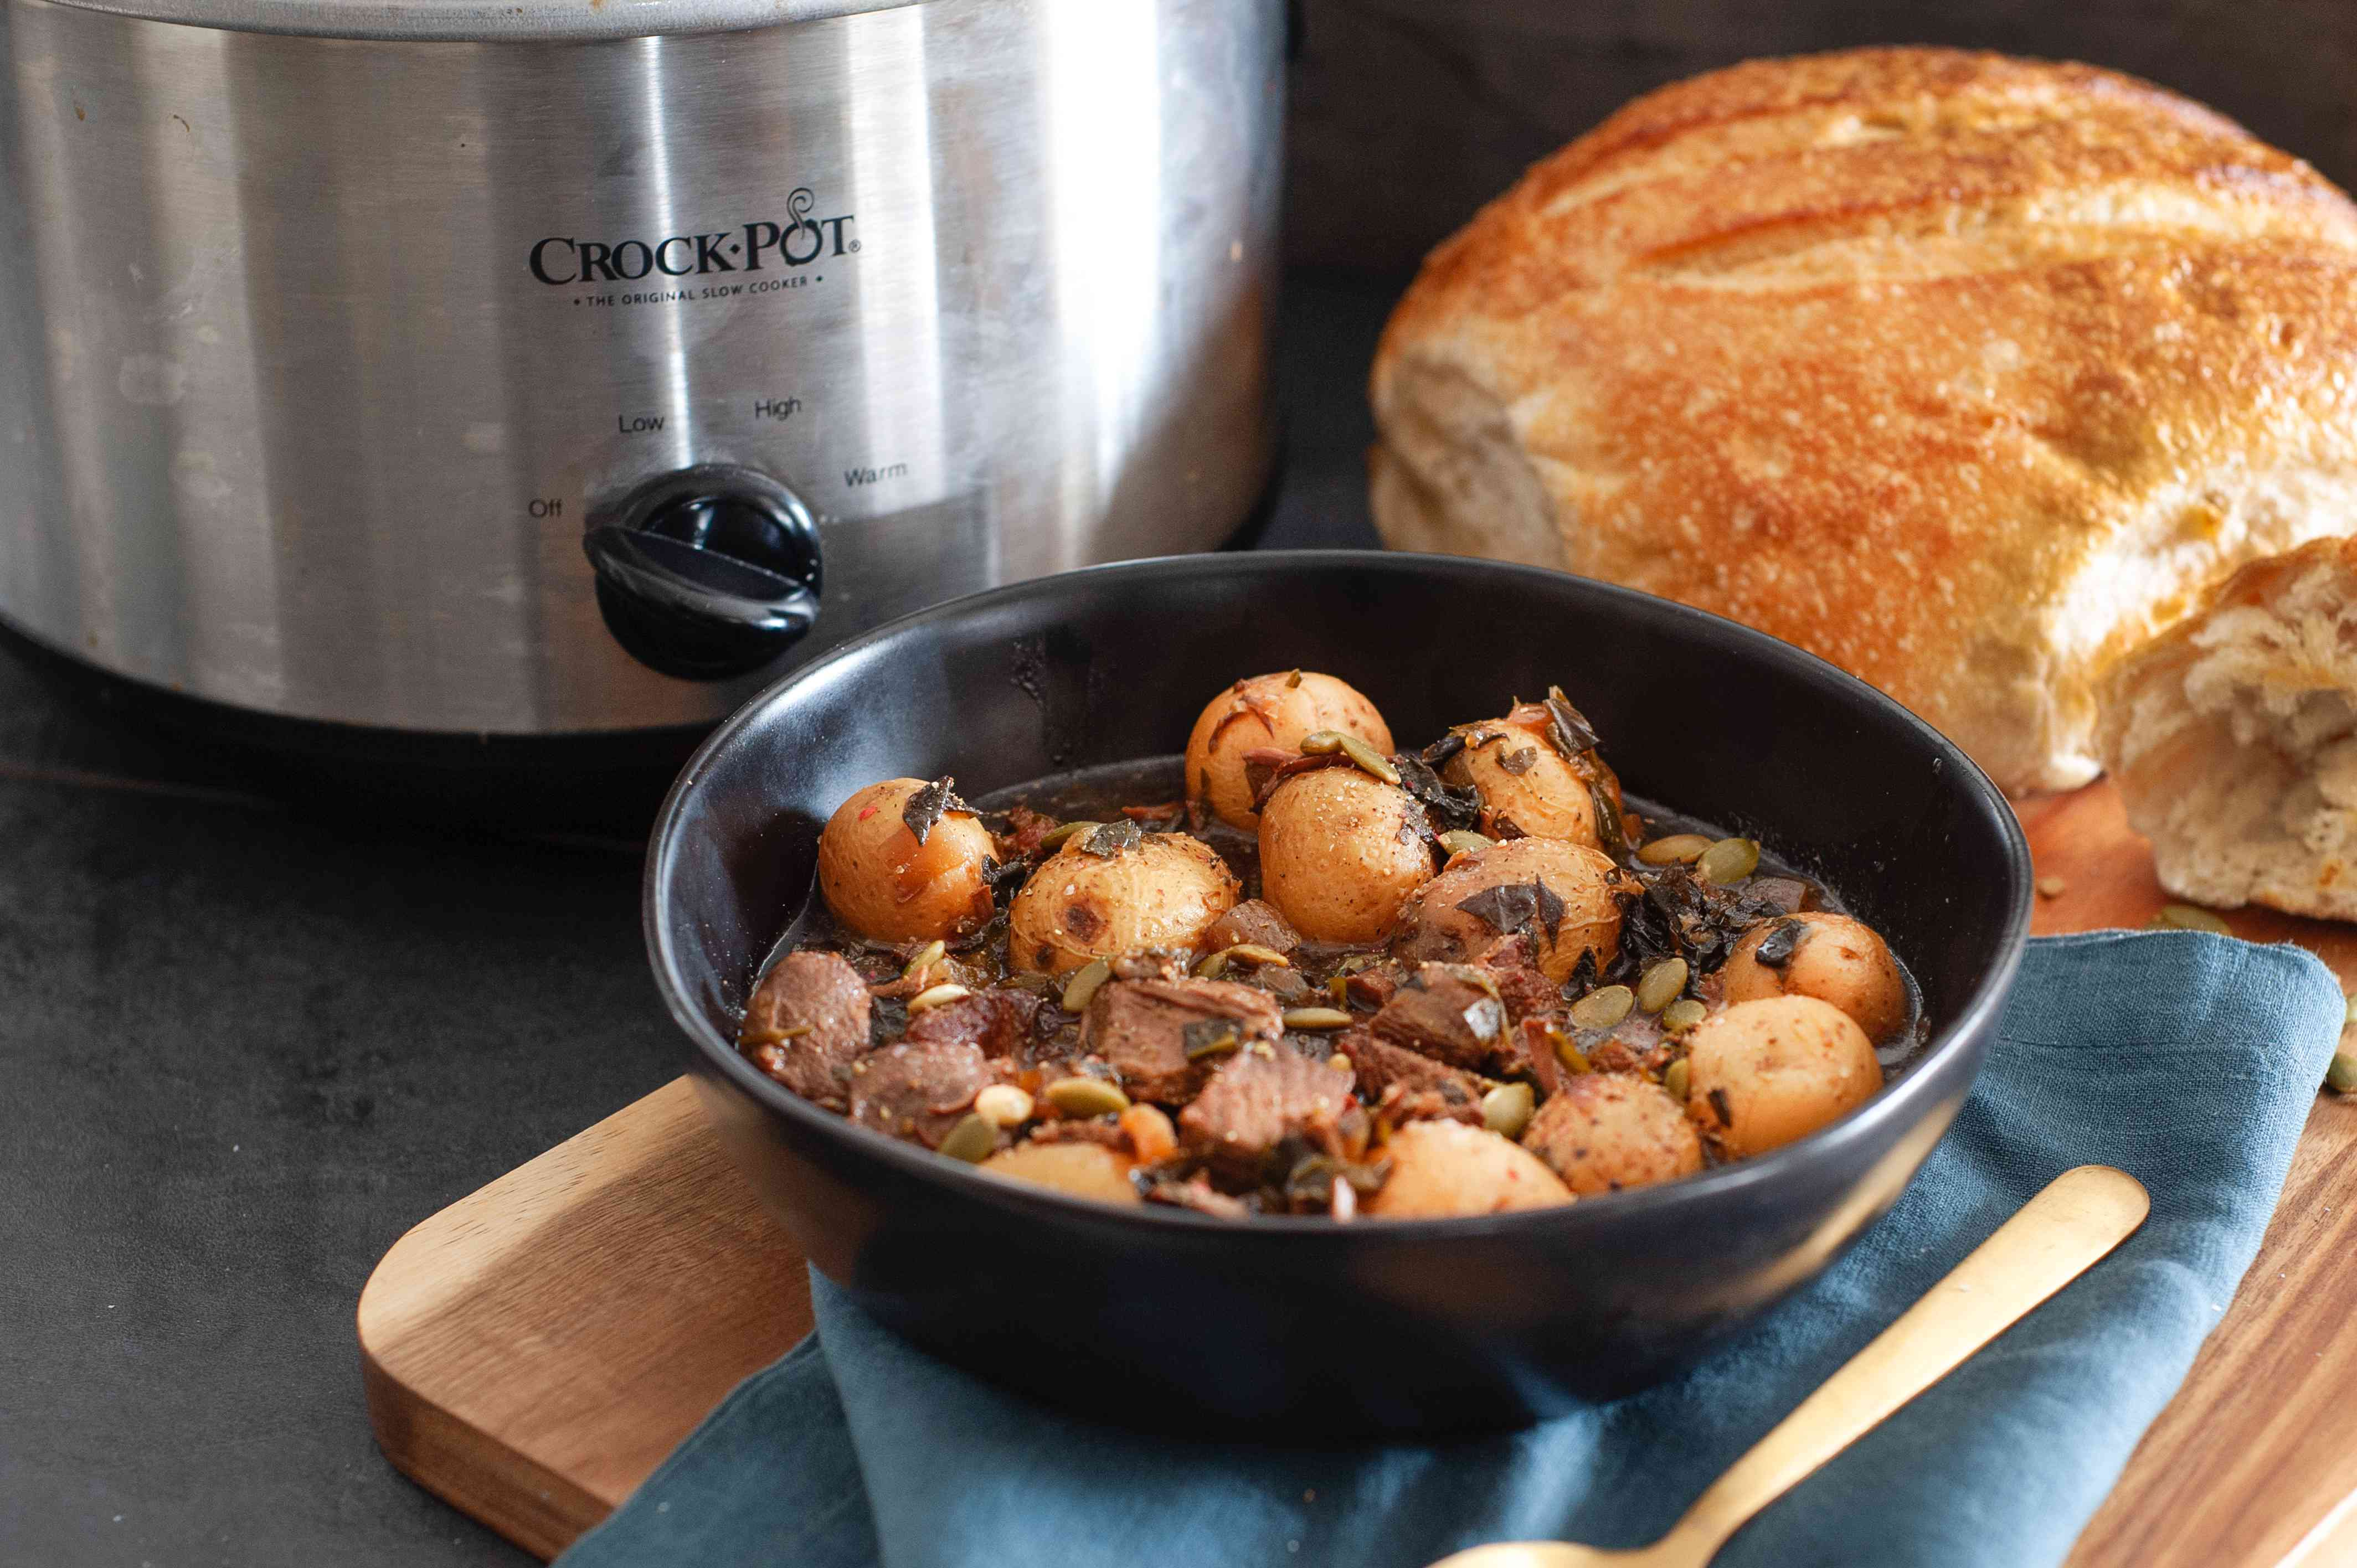 Lamb Stew with Pomegranate Molasses in a bowl with bread.